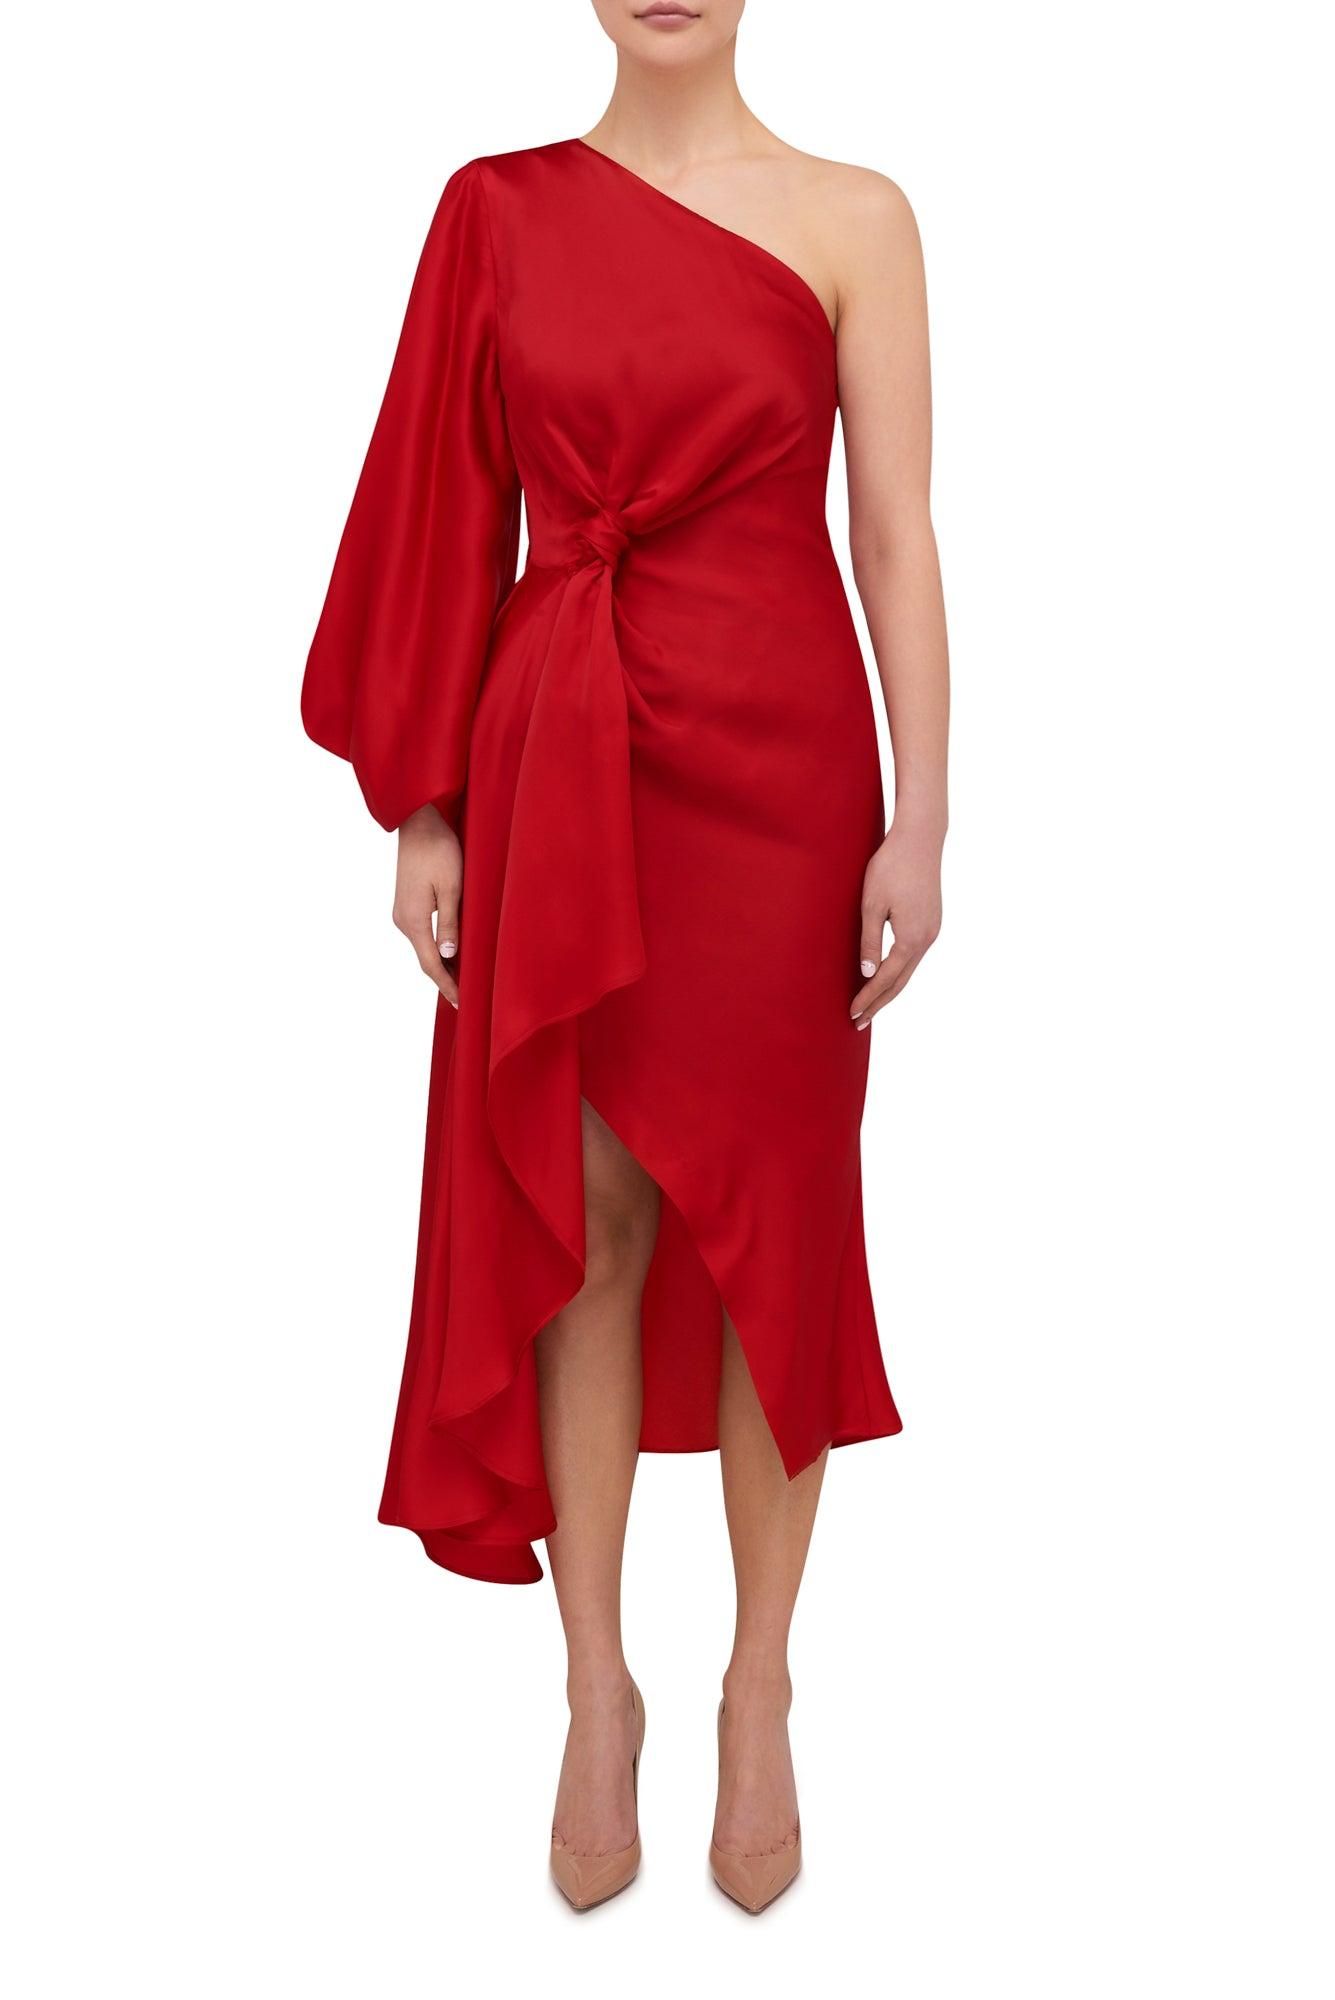 Attitude Scarf Knot Dress - Scarlett Red